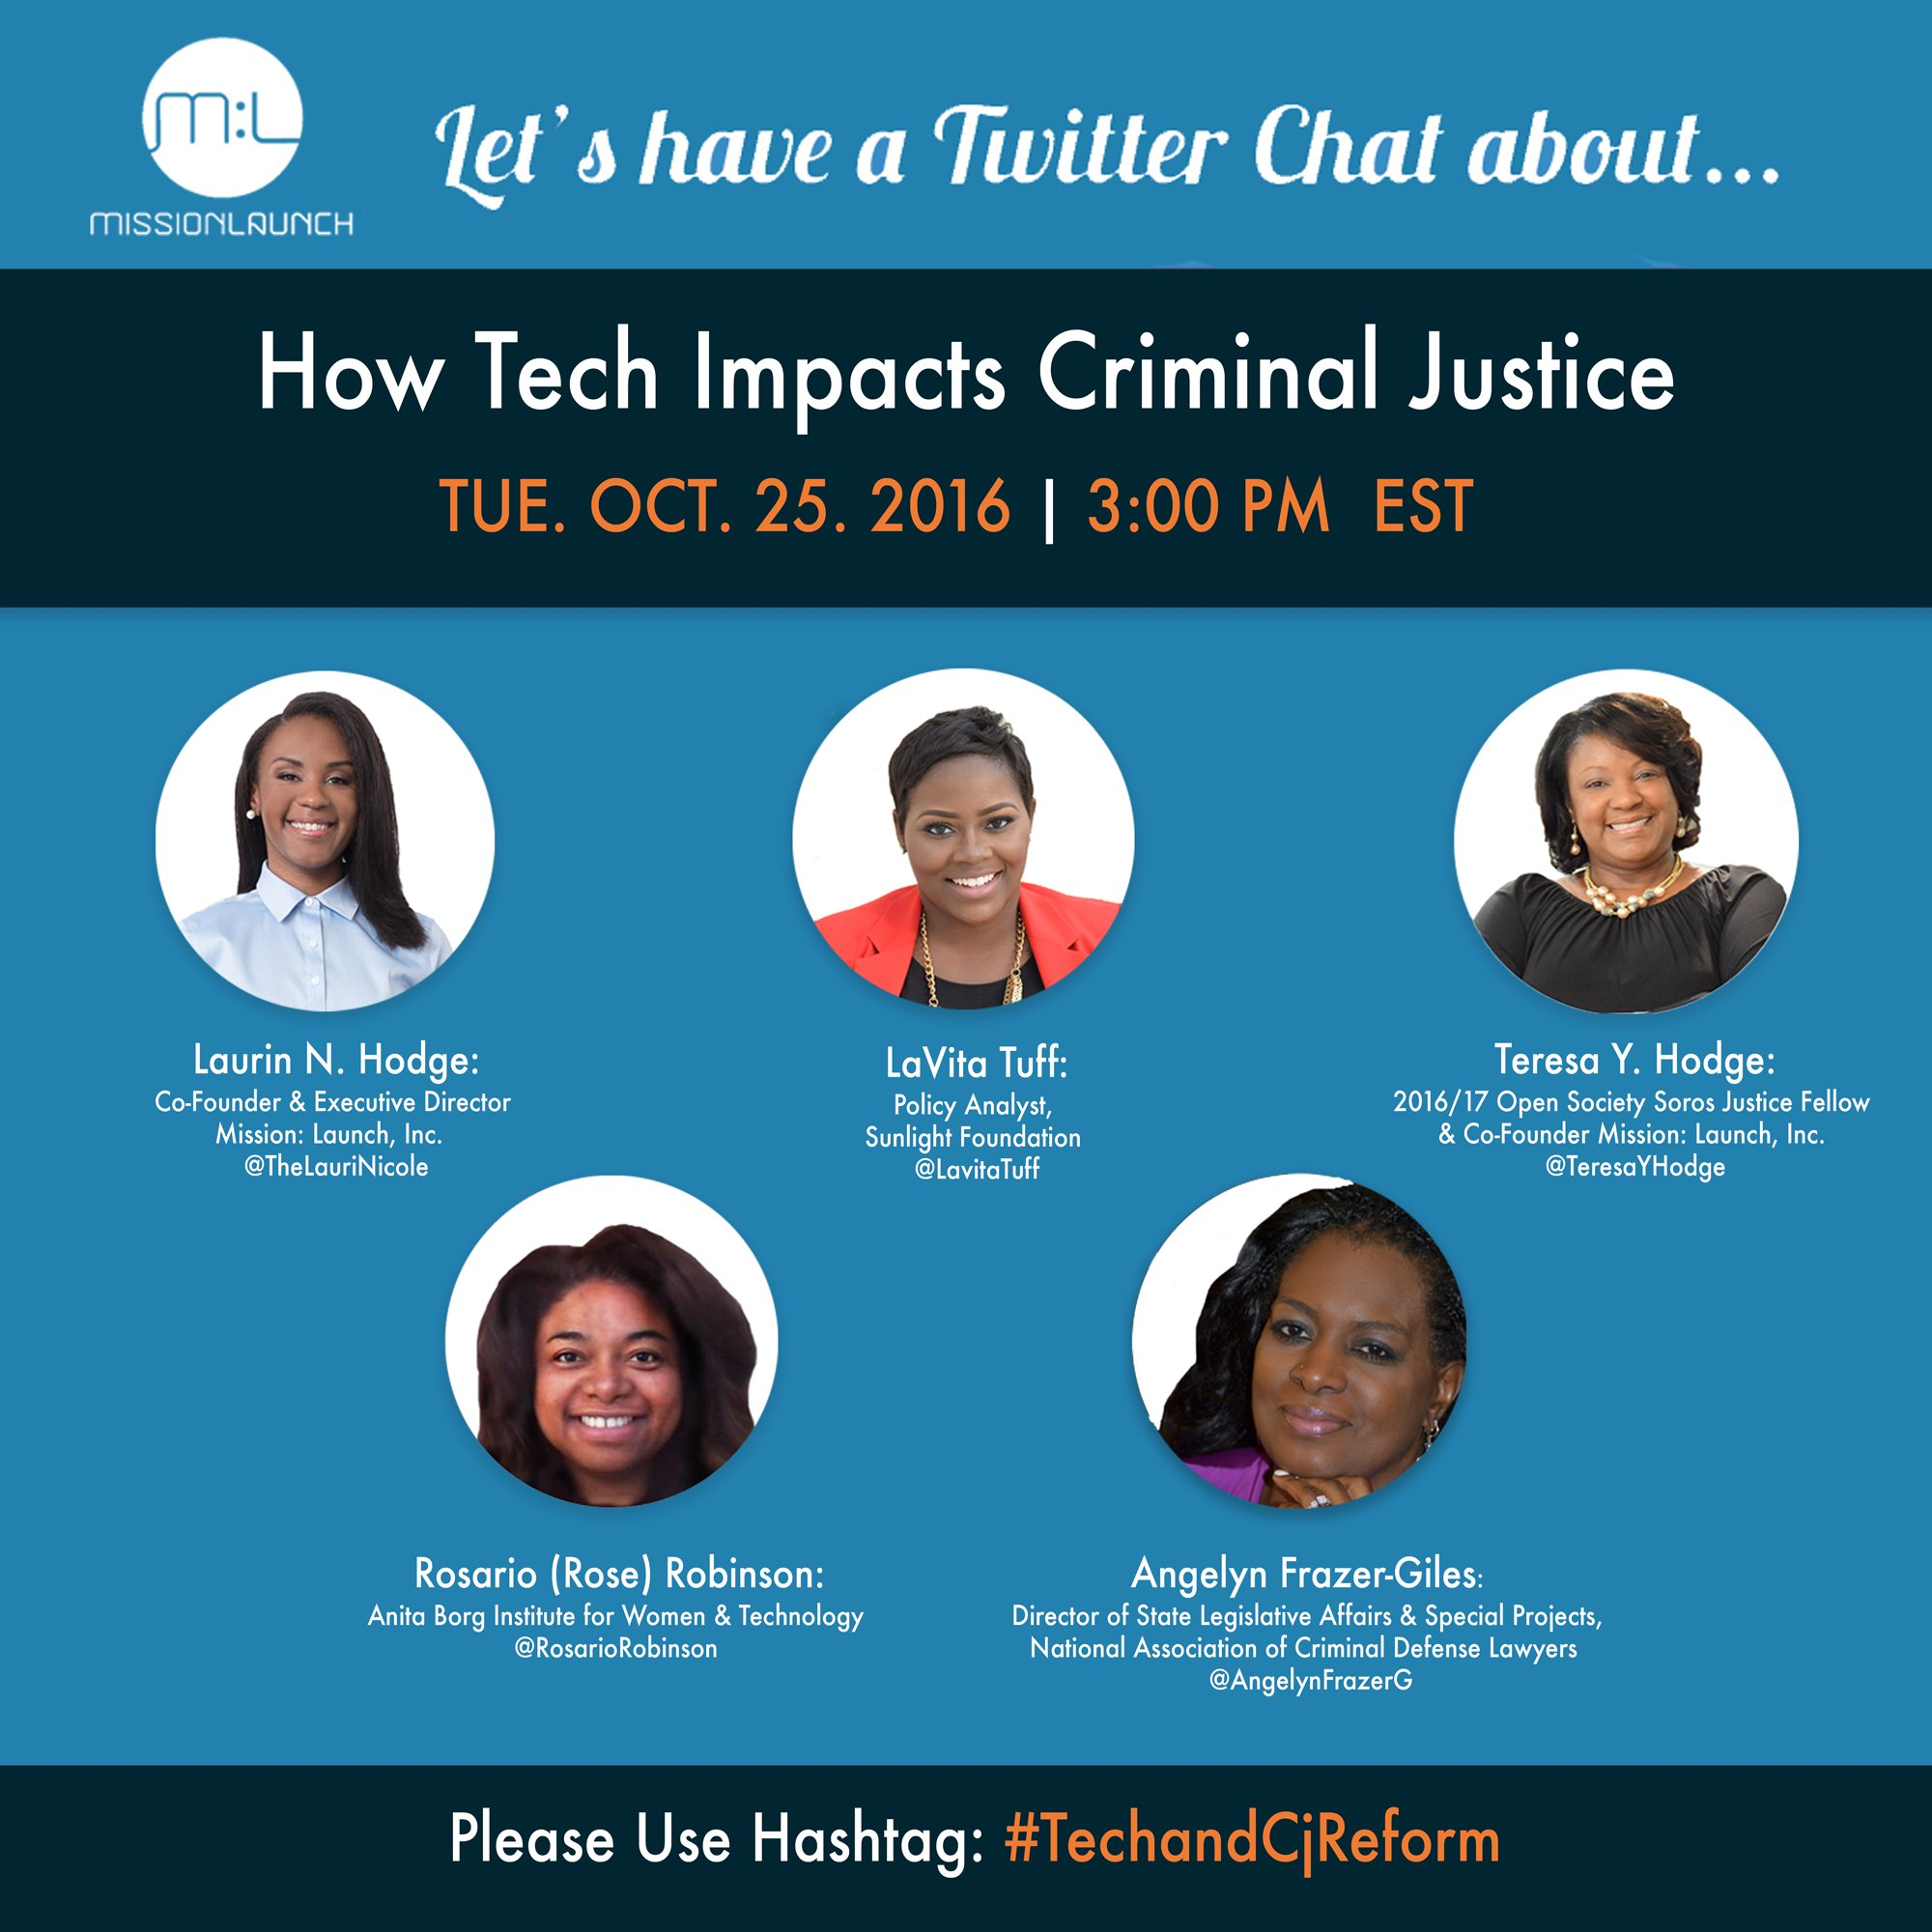 Today at 3PM we're hosting a #Tech & #CjReform Twitter Chat. Participate hashtag #TechAndCjReform  w/ @SunFoundation @NACDL @rosariorobinson https://t.co/CNOoeCXm14